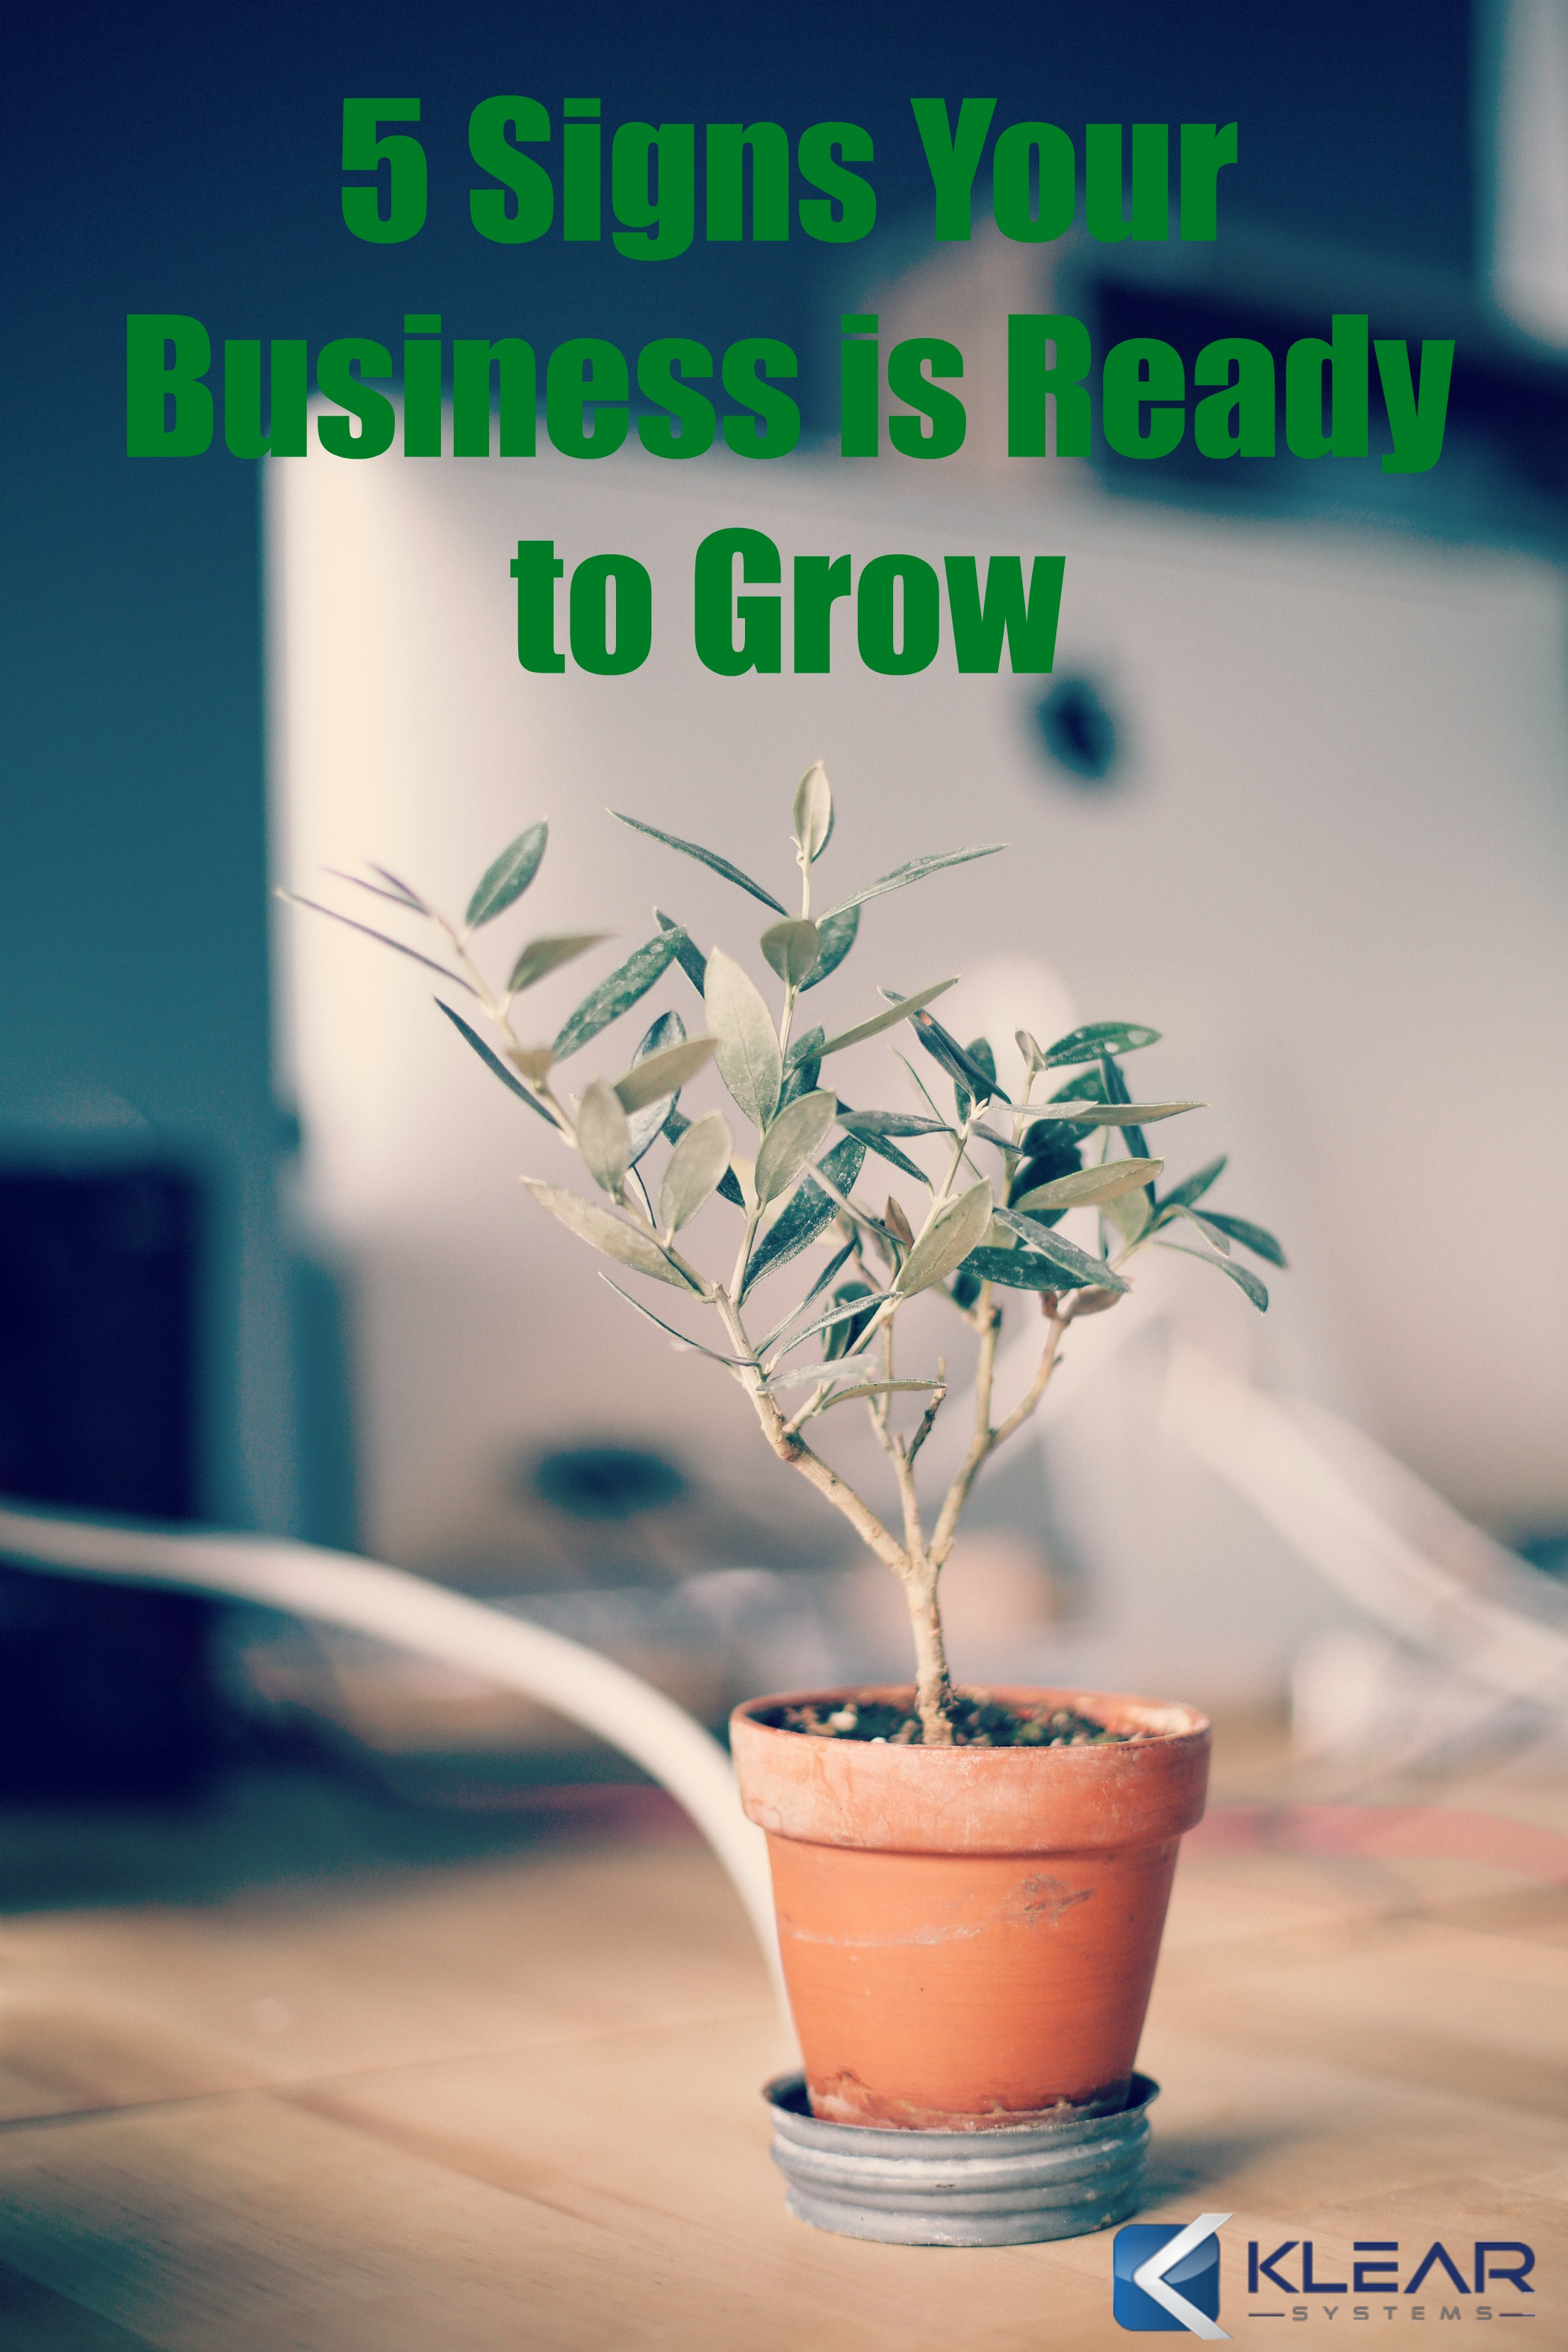 5 Signs Your Business is Ready to Grow.jpg